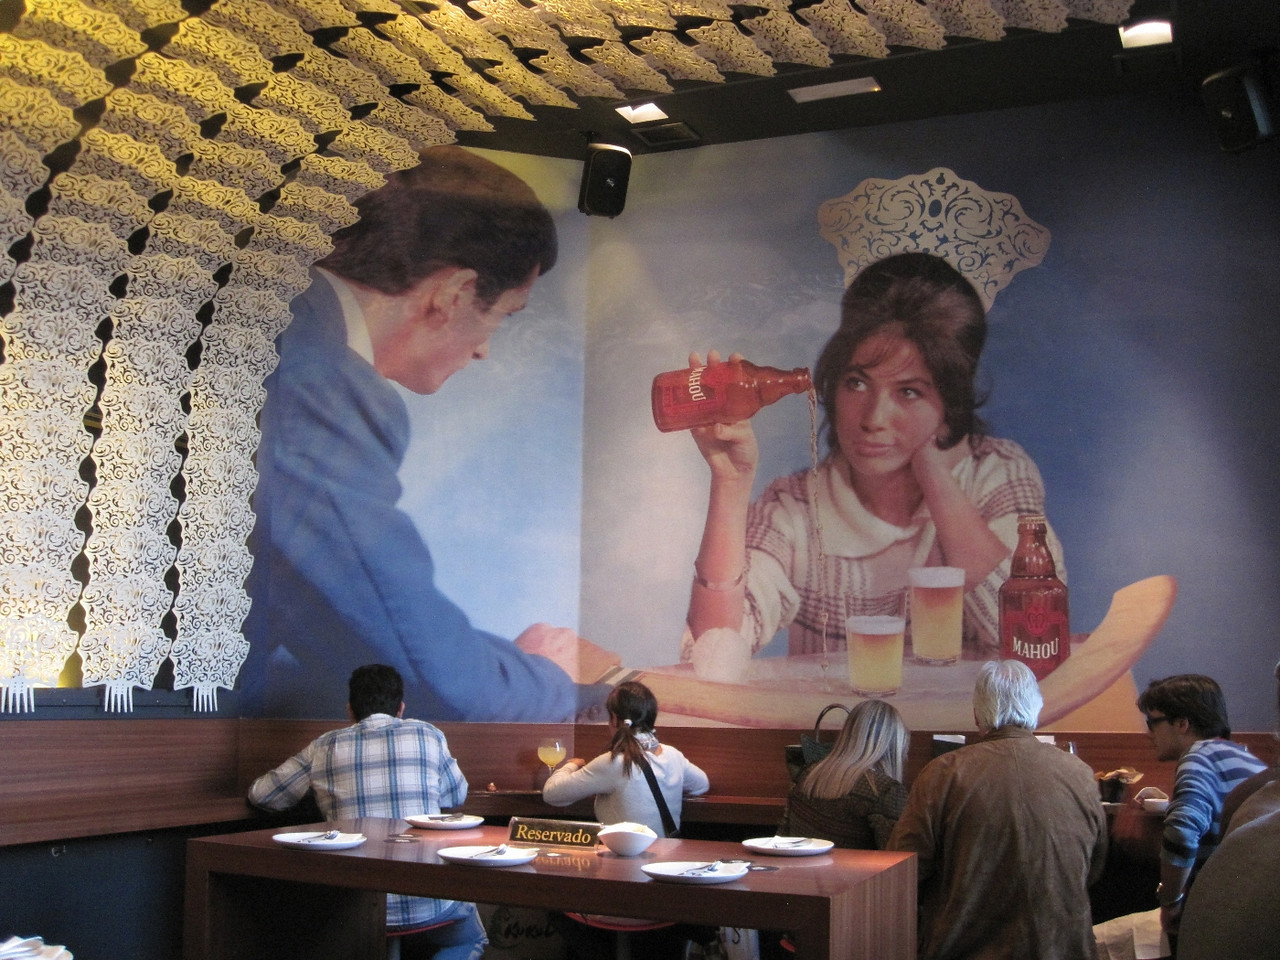 This mural was also a major piece of the decor.